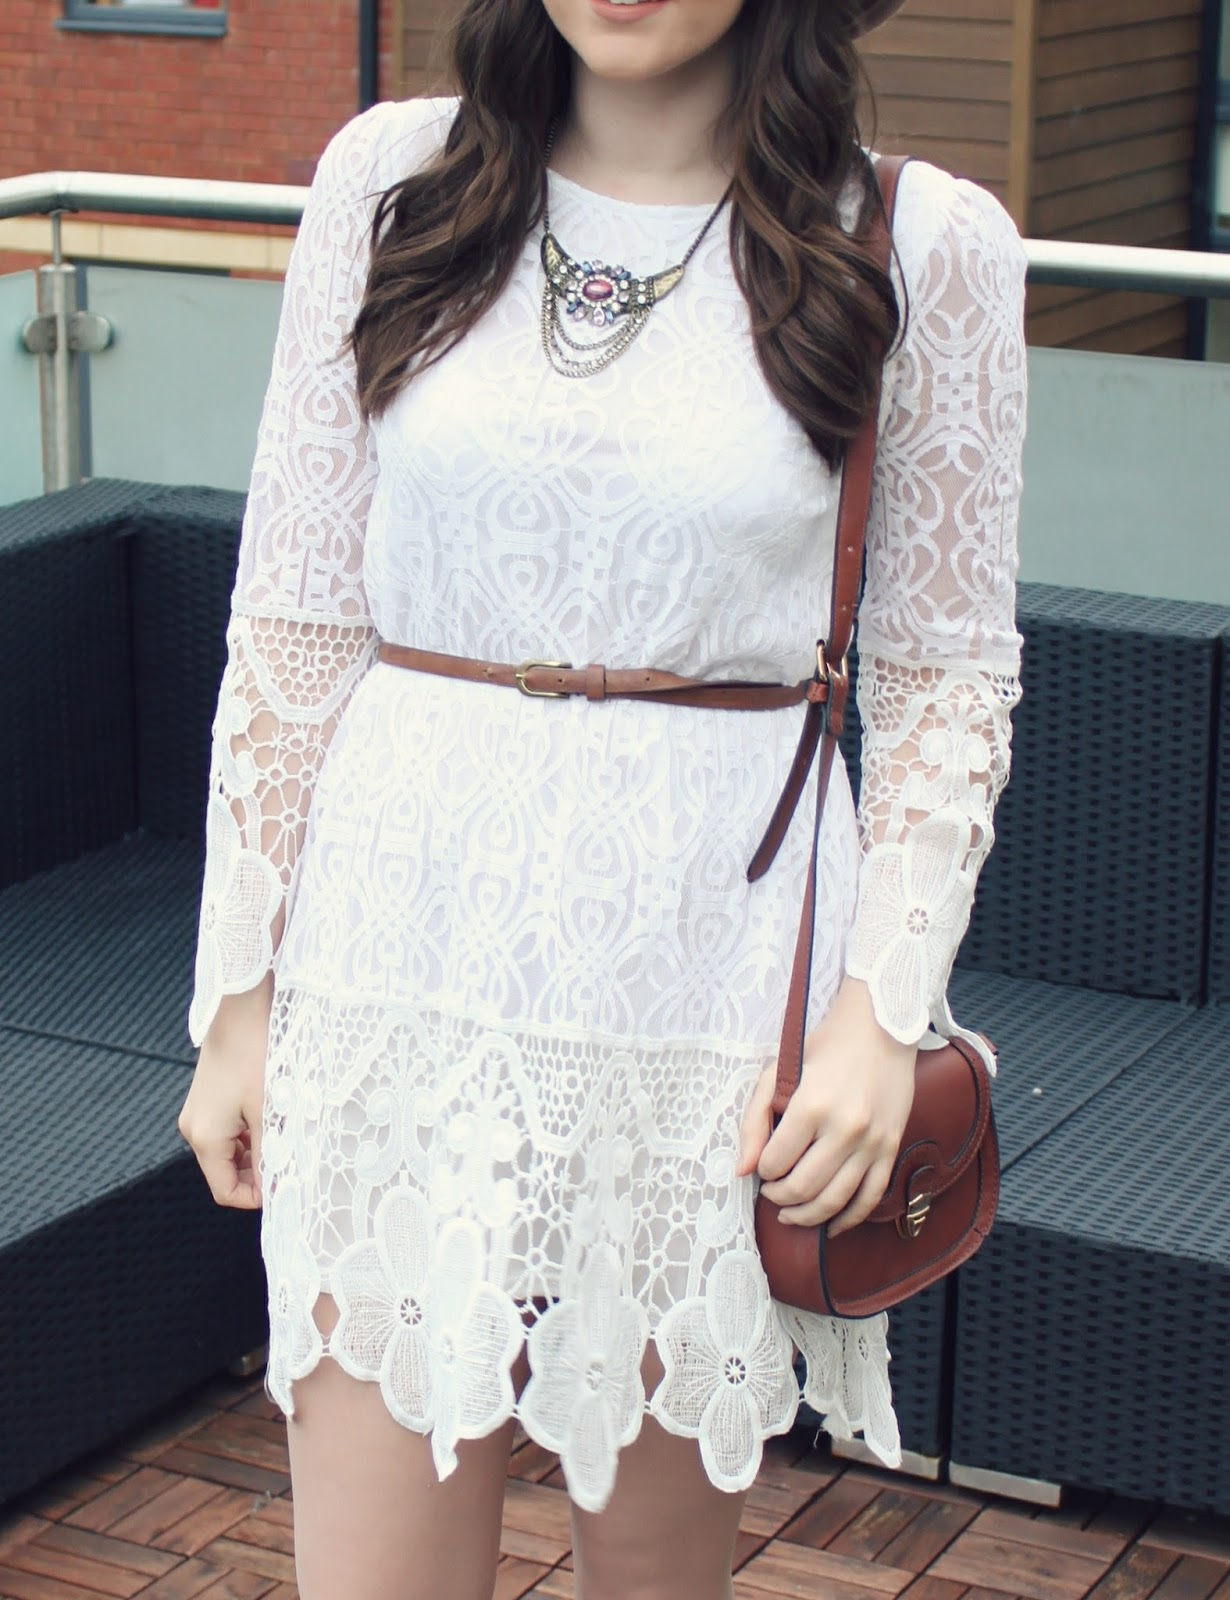 Bohemian-style-white-lace-dress-with-brown-bag